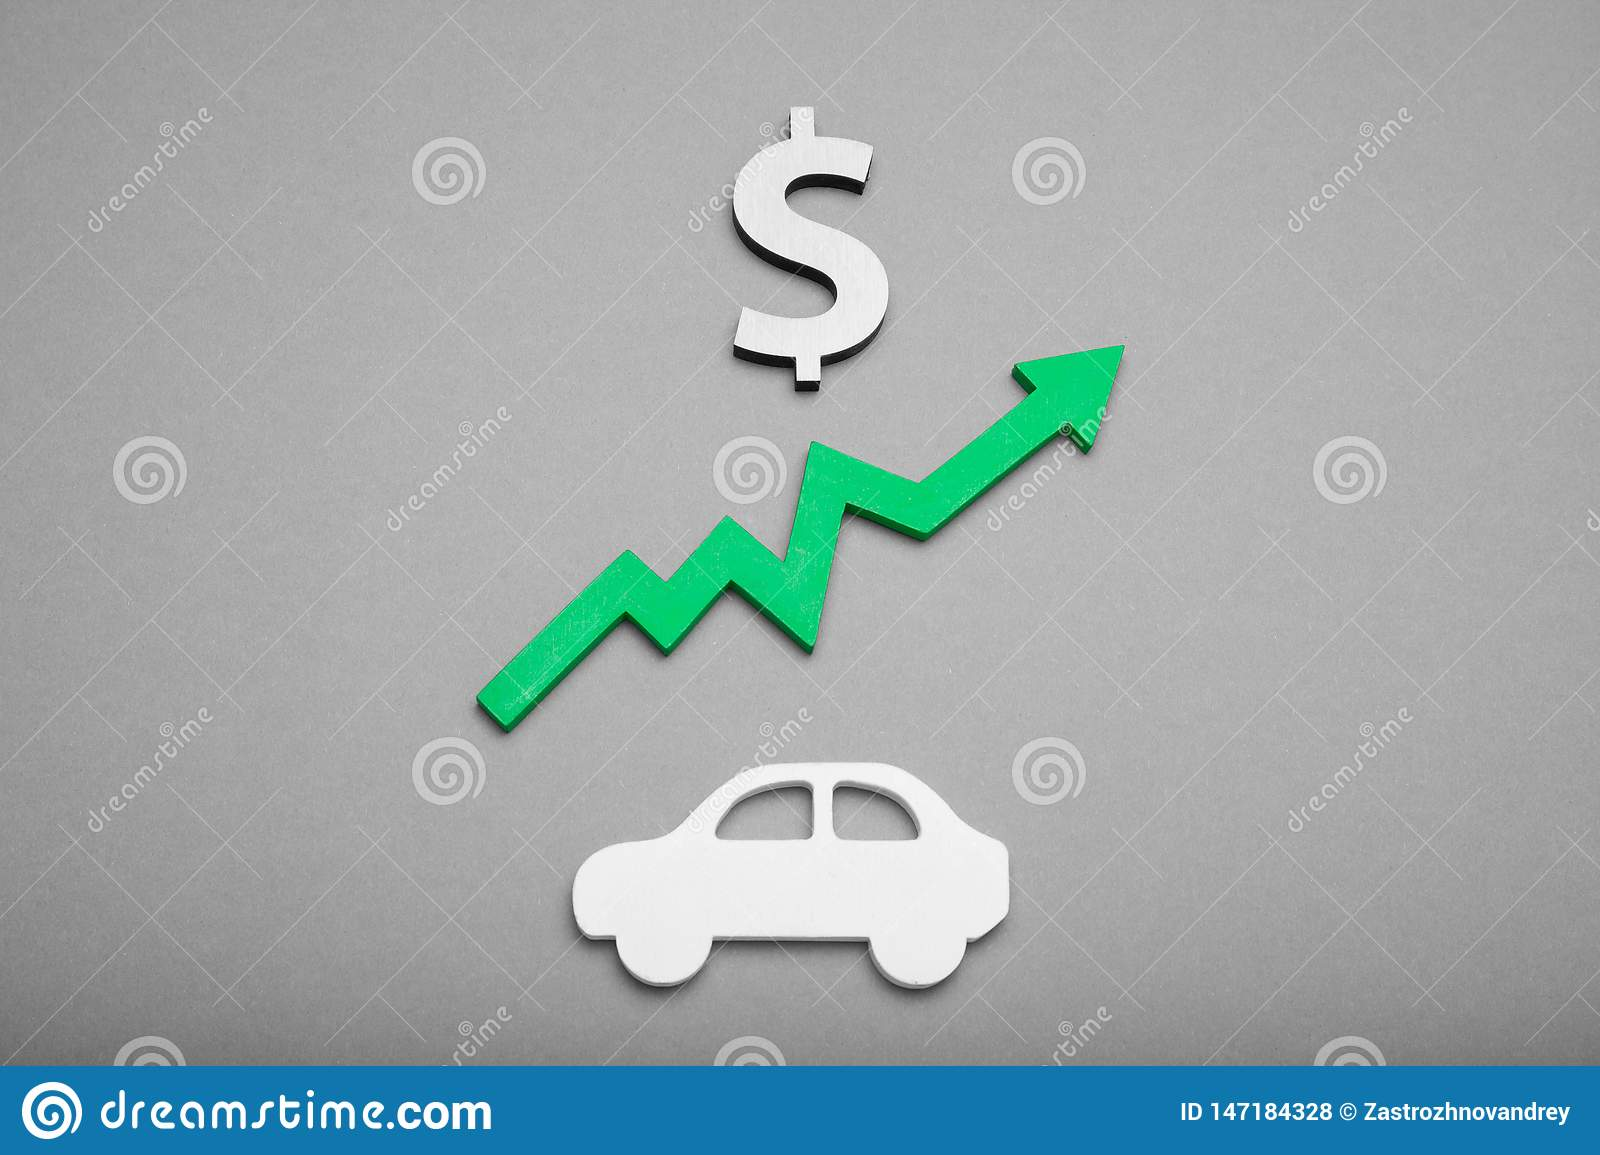 Car price rising, automobile background concept. Cost credit. Insurance, investment, growth